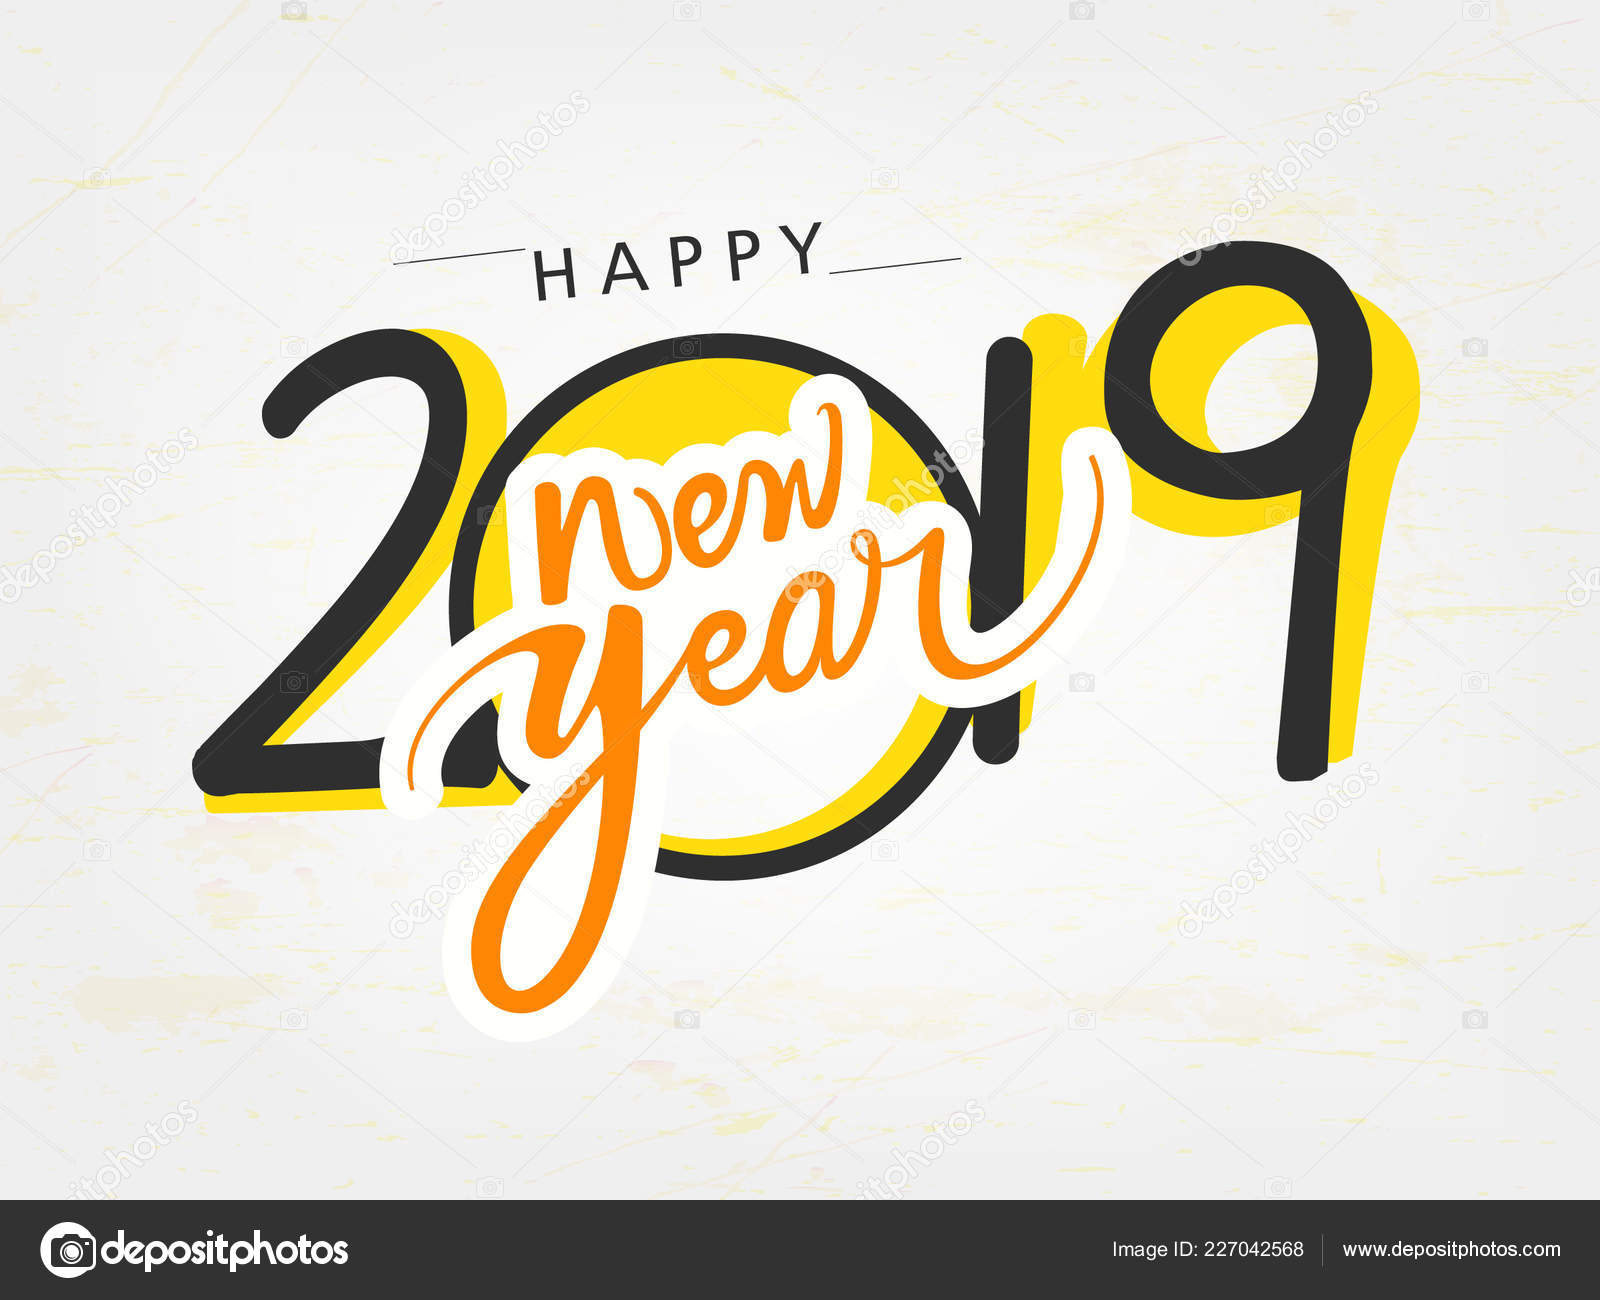 Happy New Year Lettering Design 56